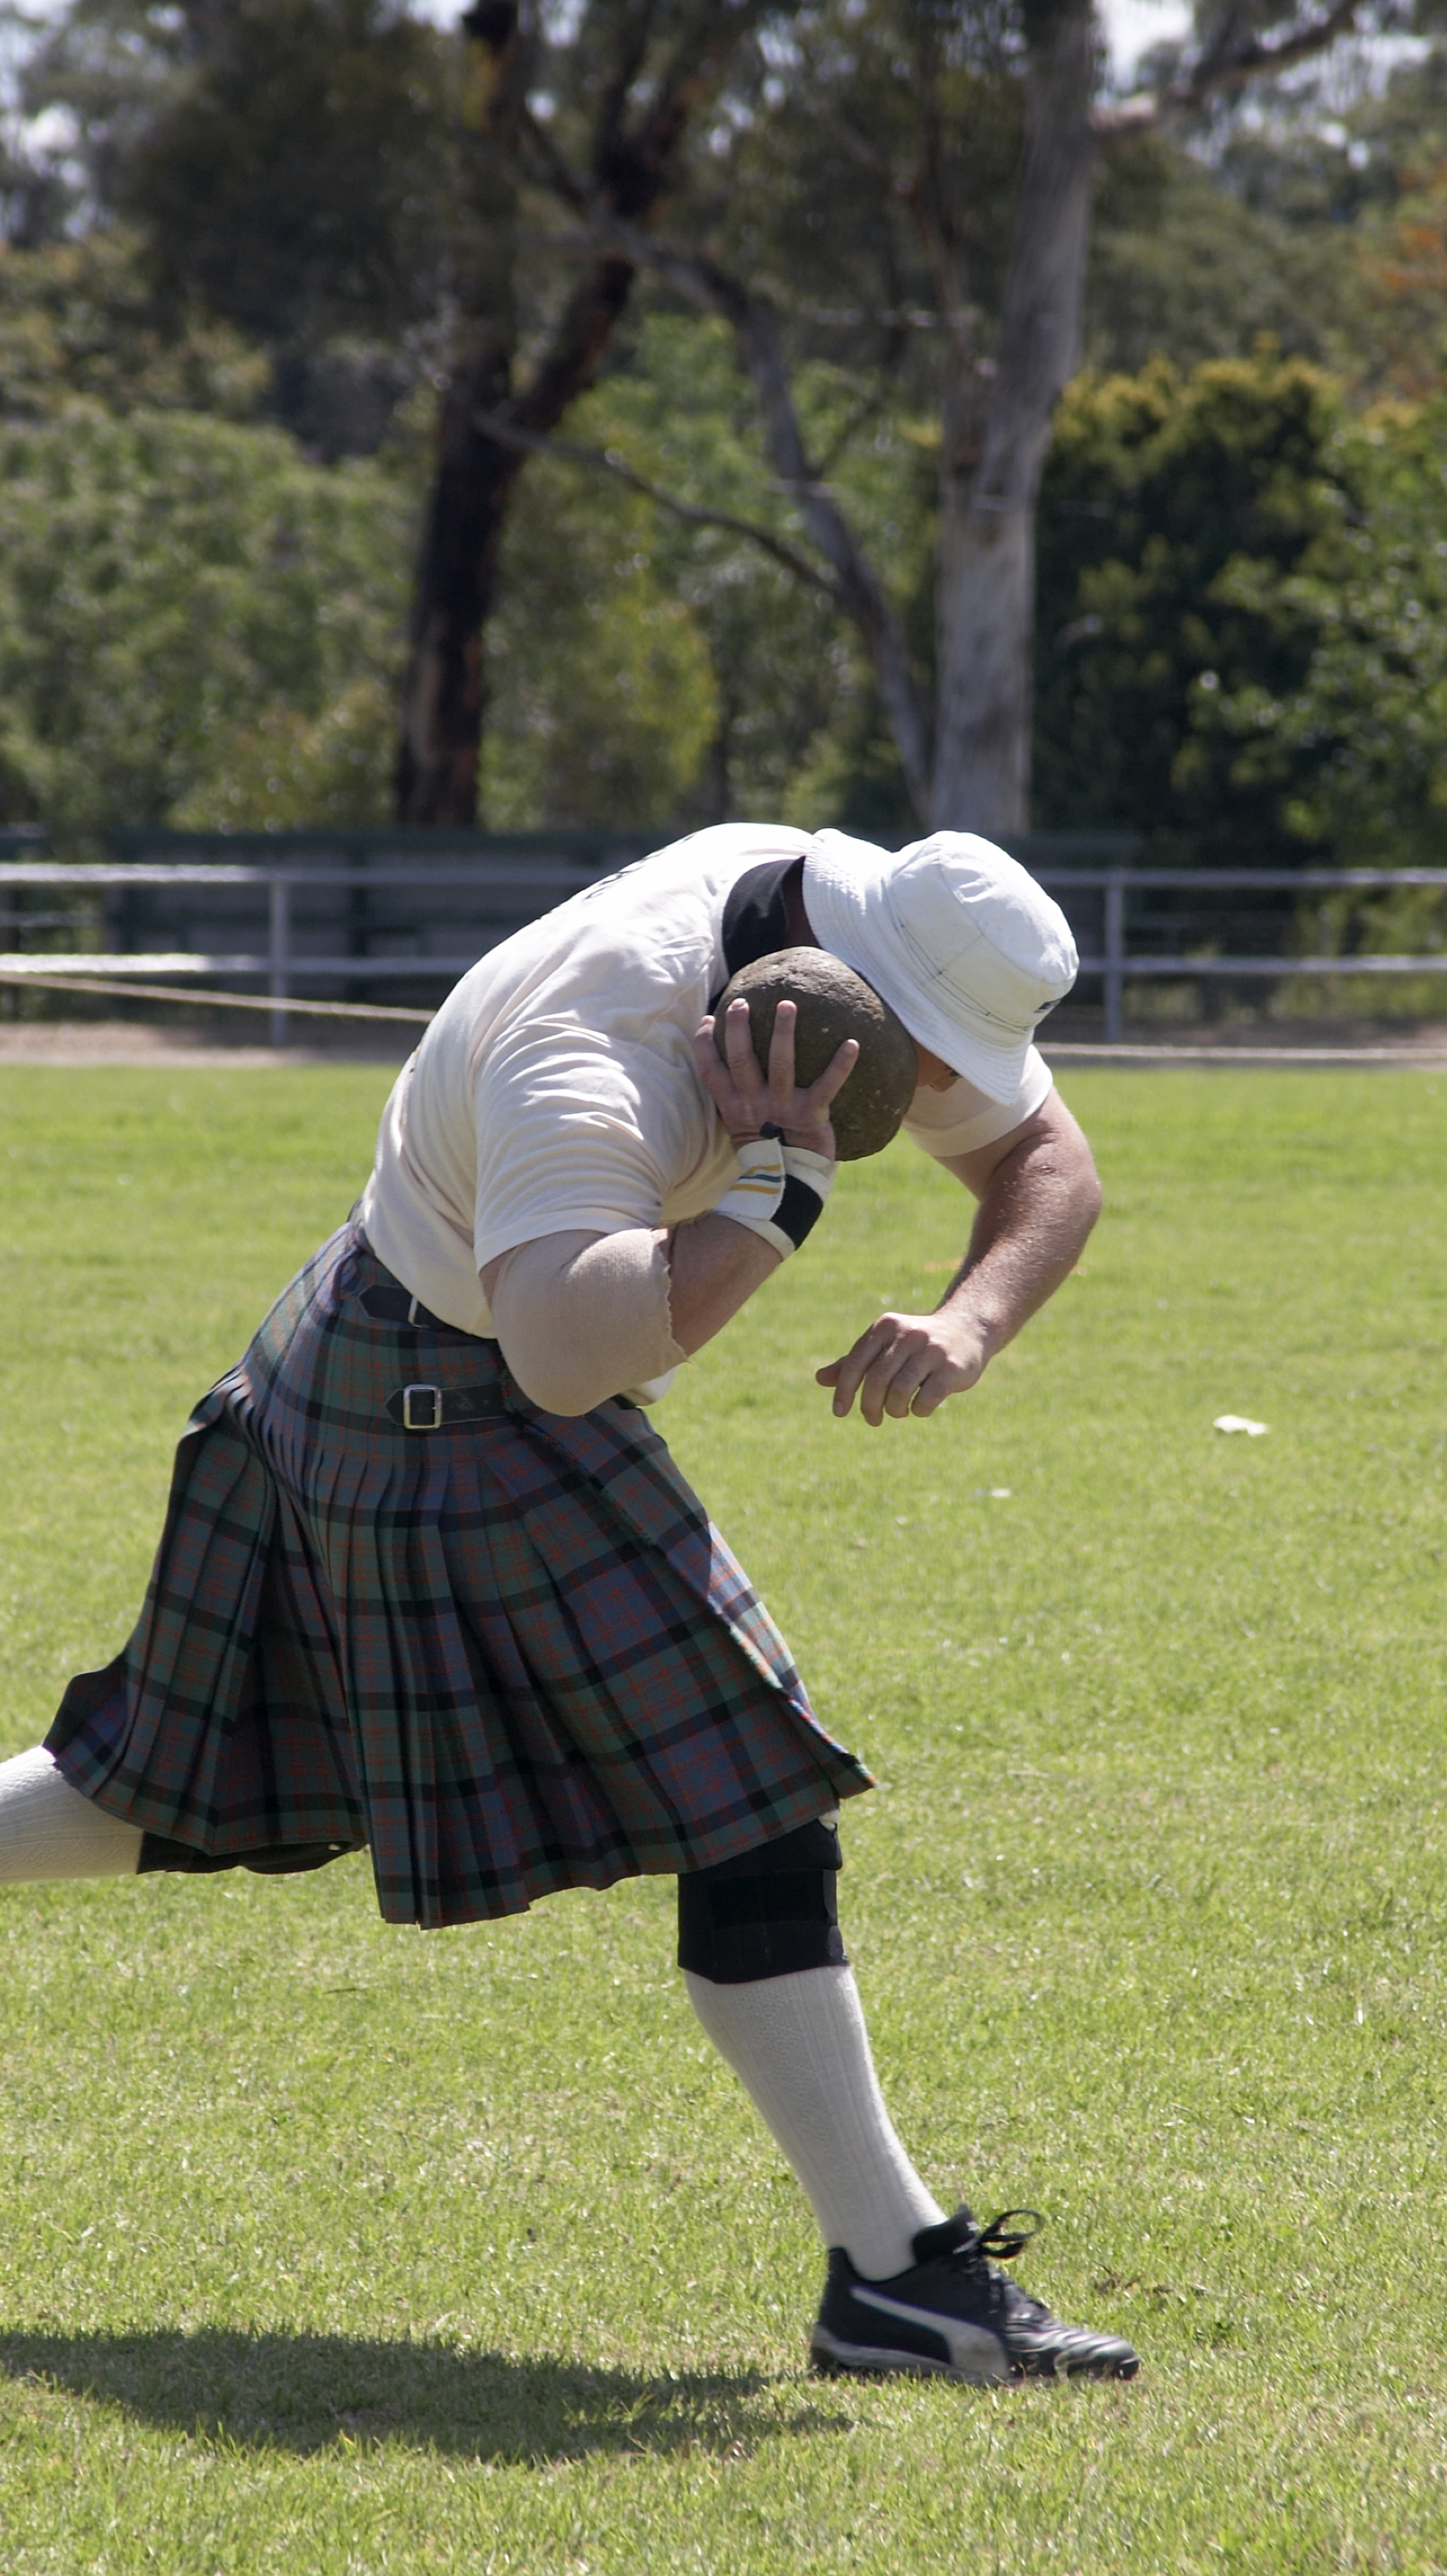 stone put highland games event